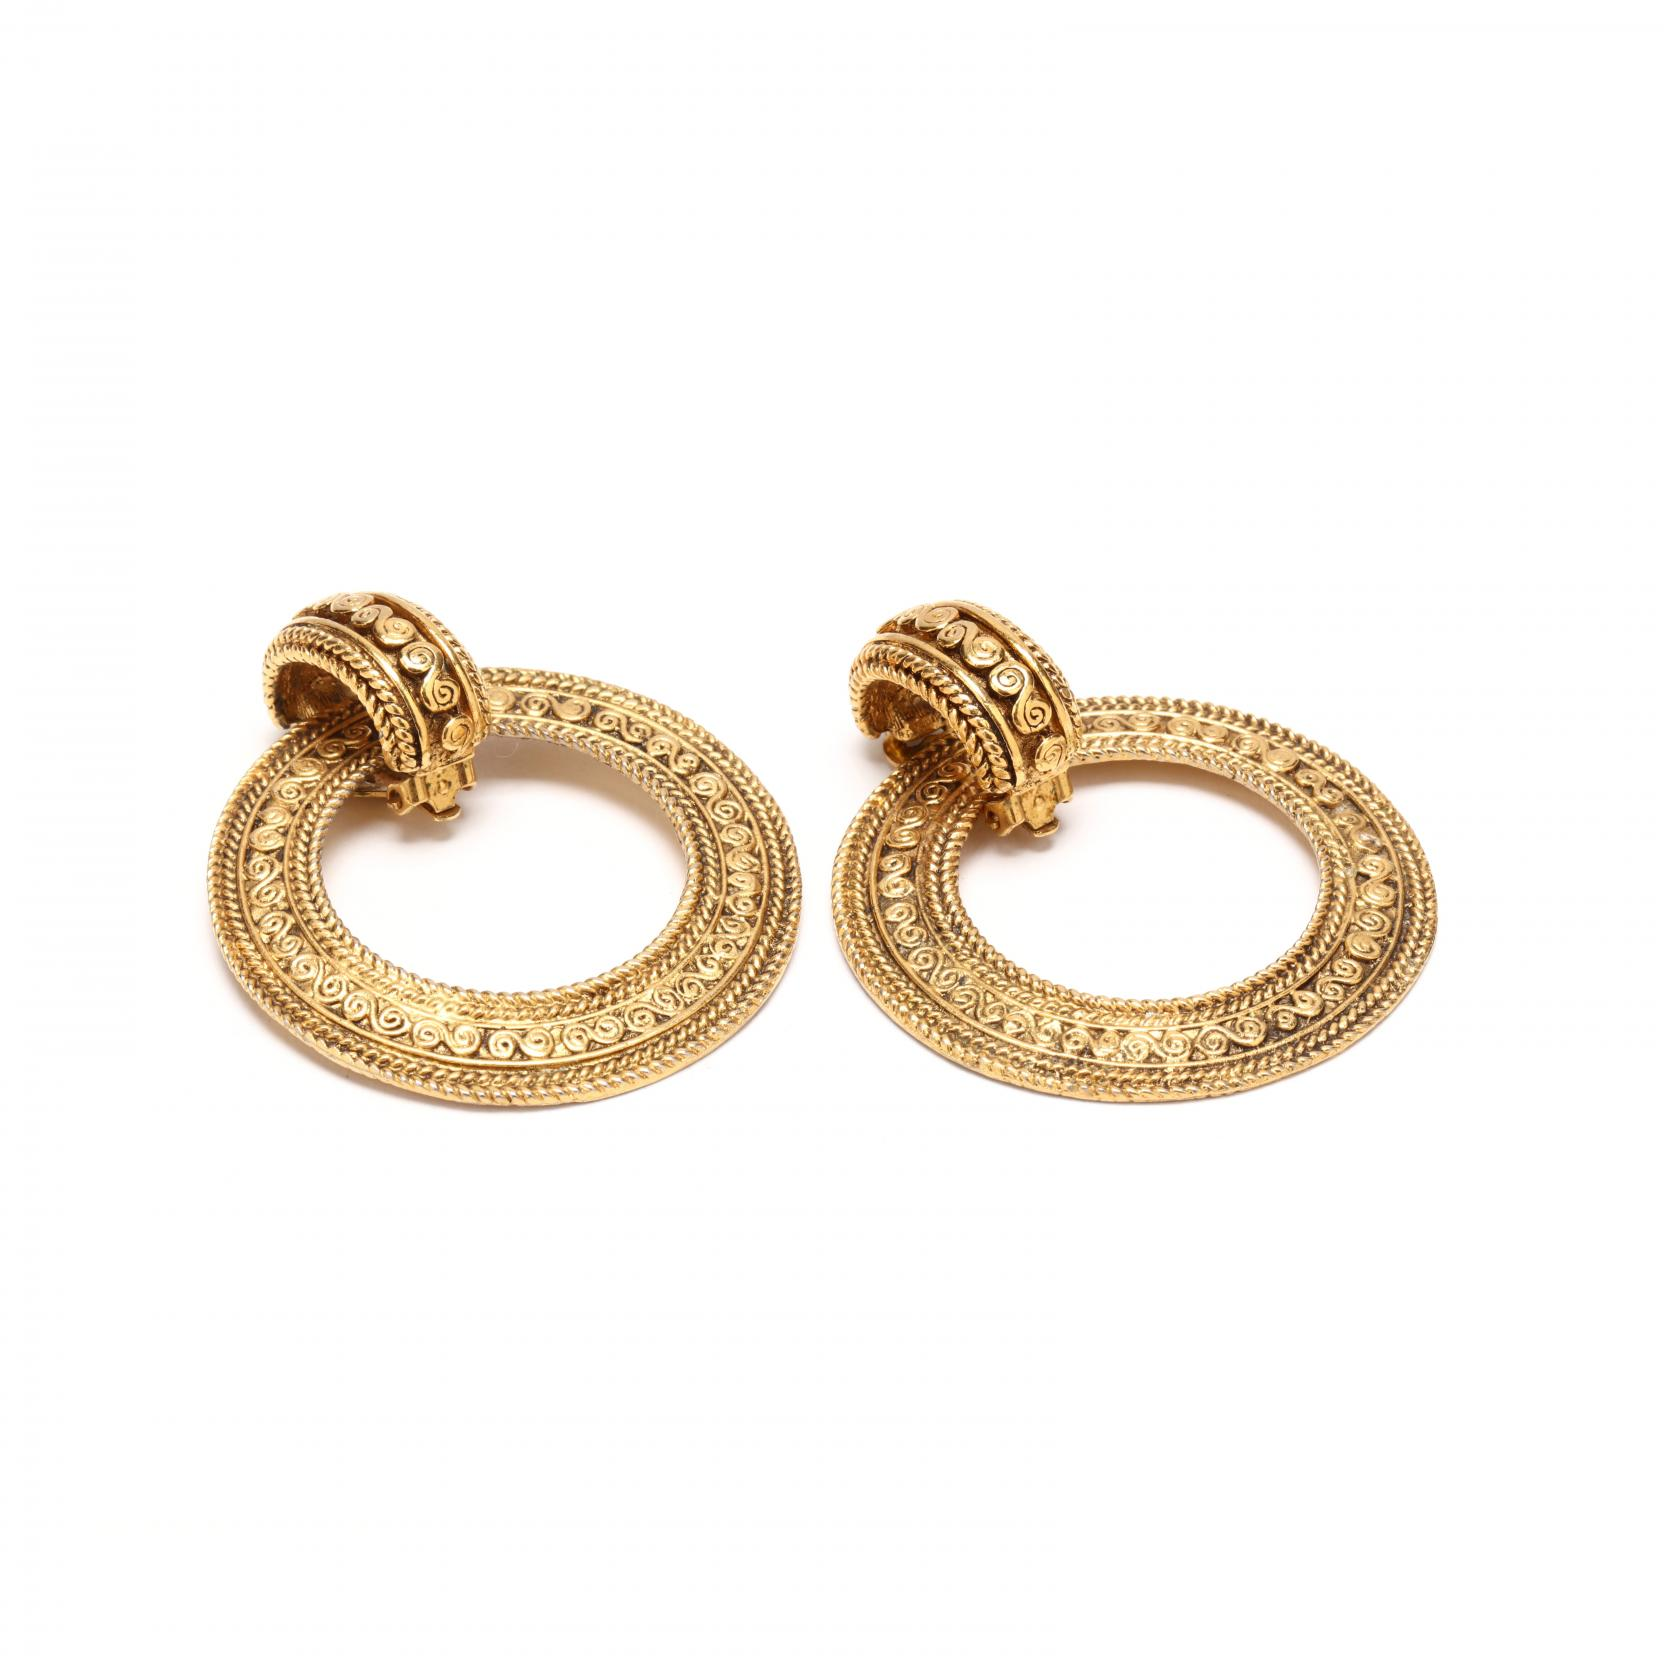 pair-of-hoop-earclips-chanel